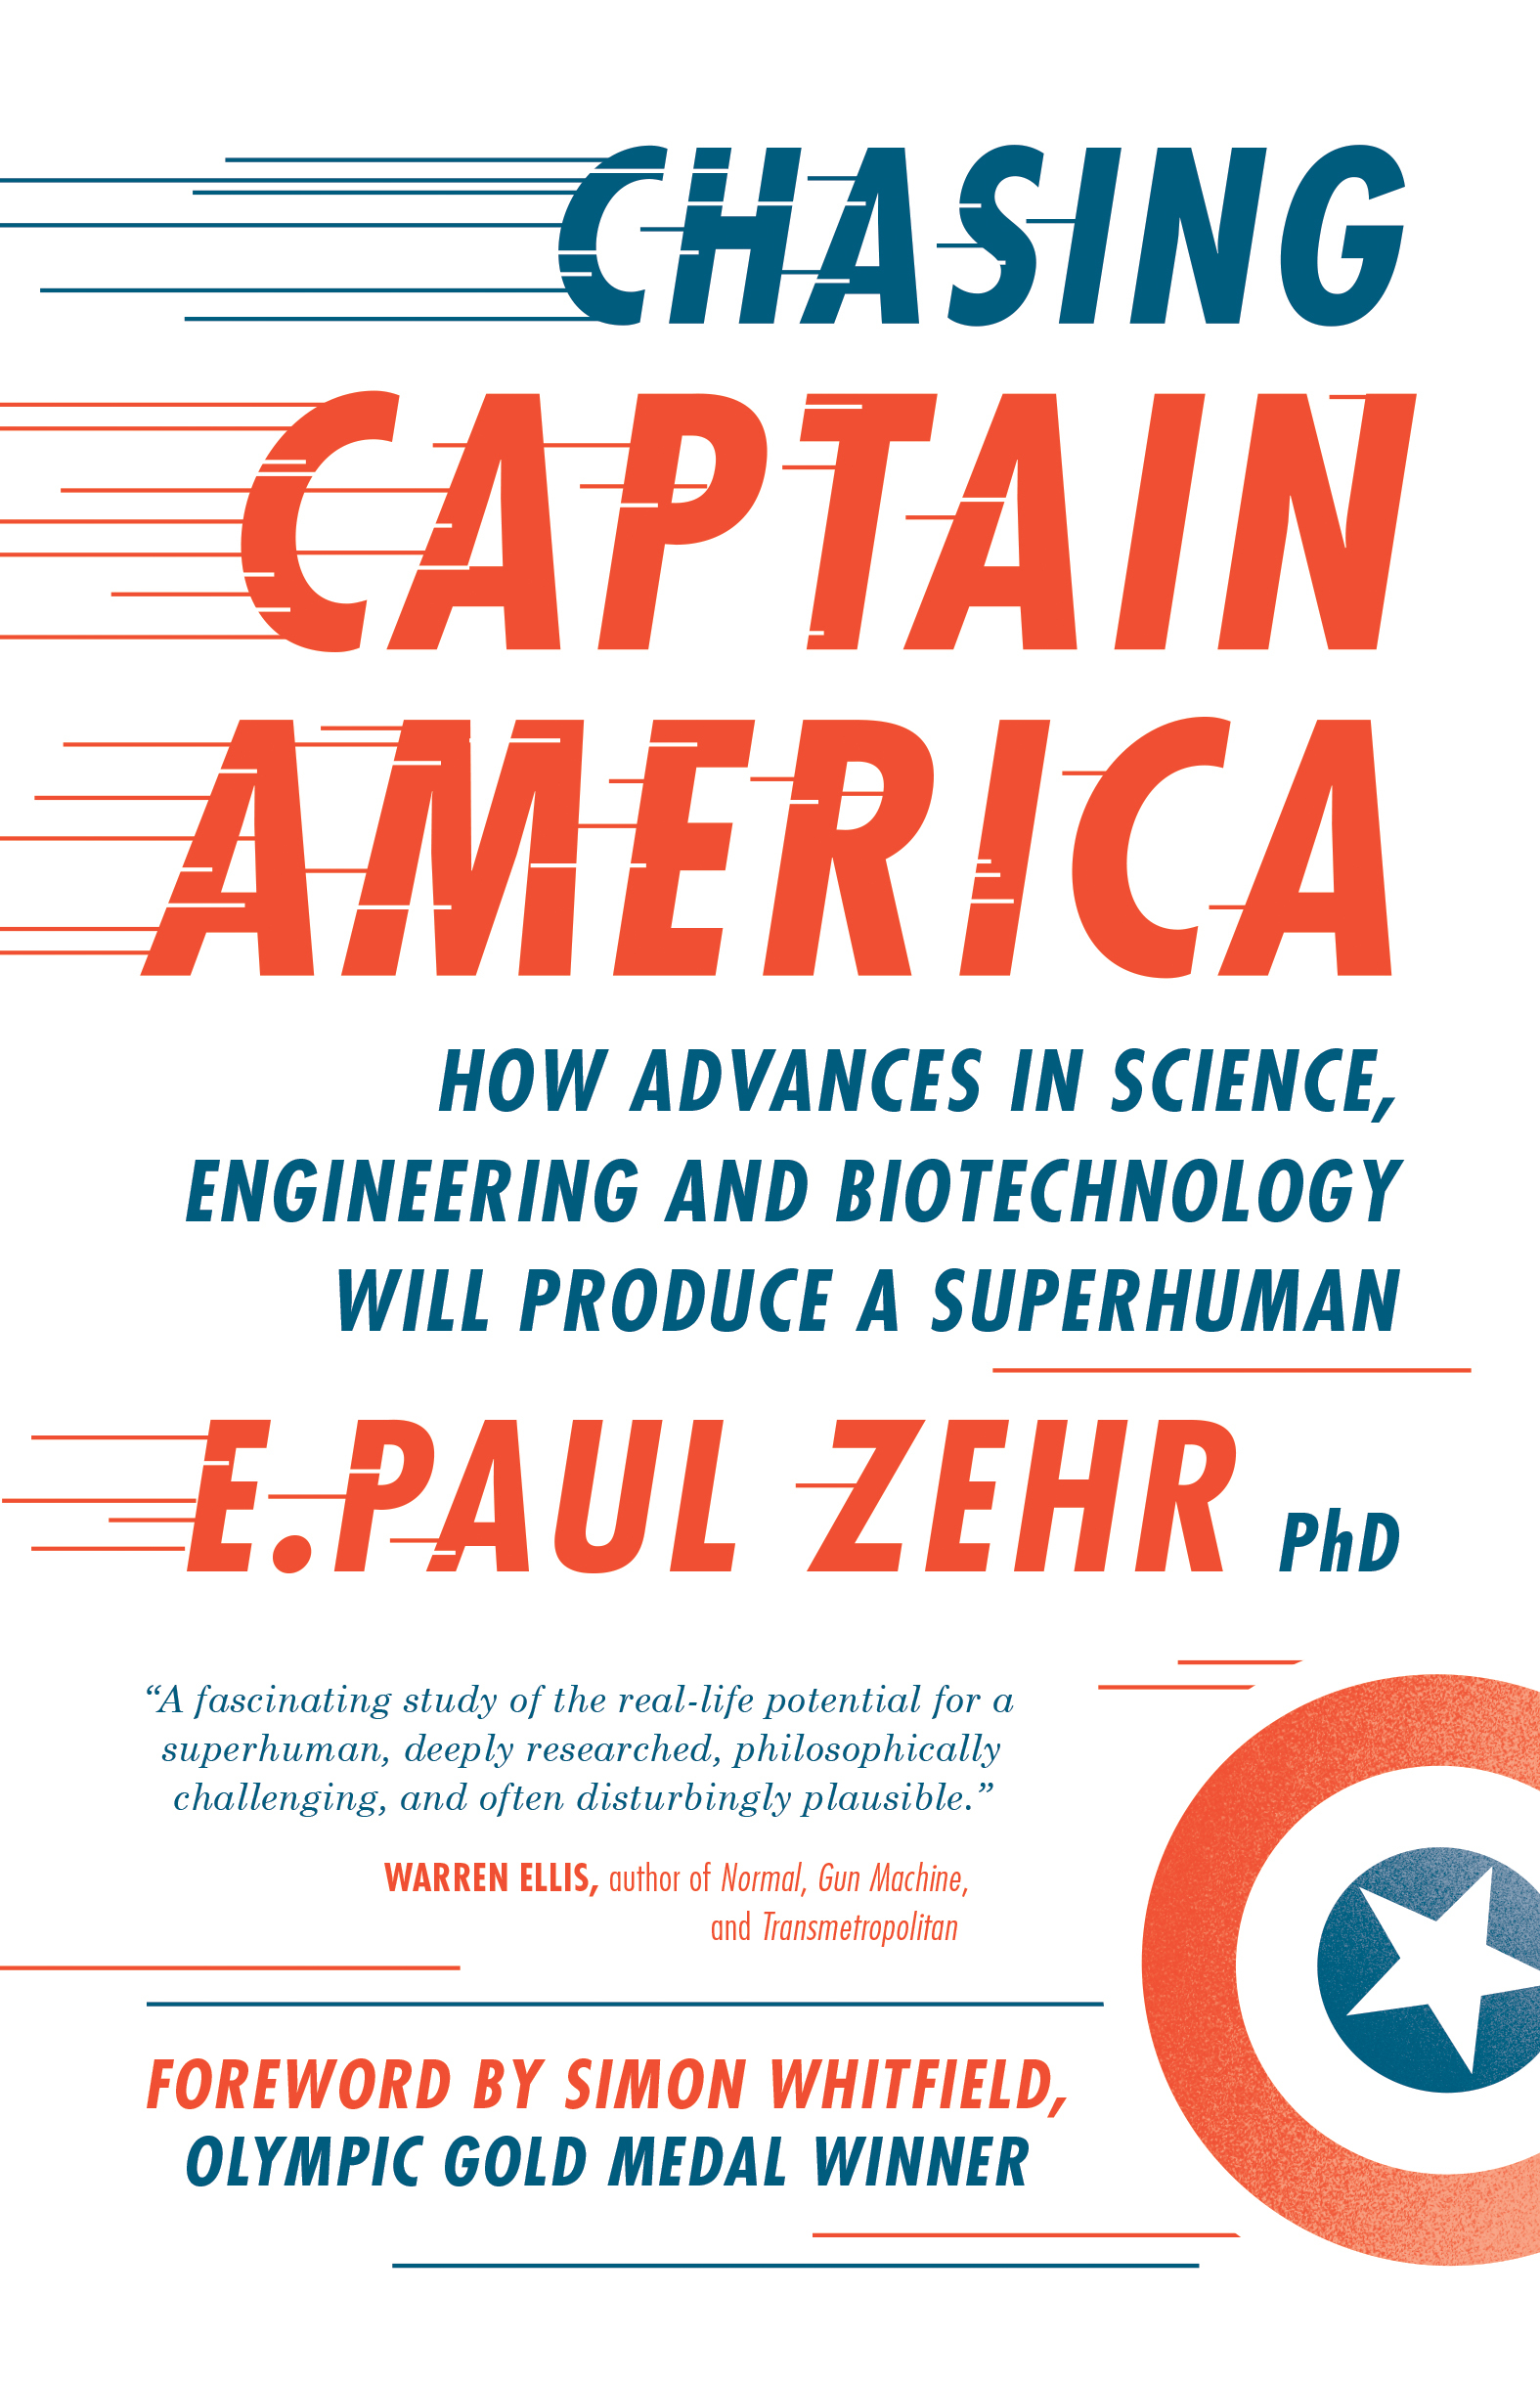 Chasing Captain America How Advances in Science, Engineering, and Biotechnology Will Produce a Superhuman